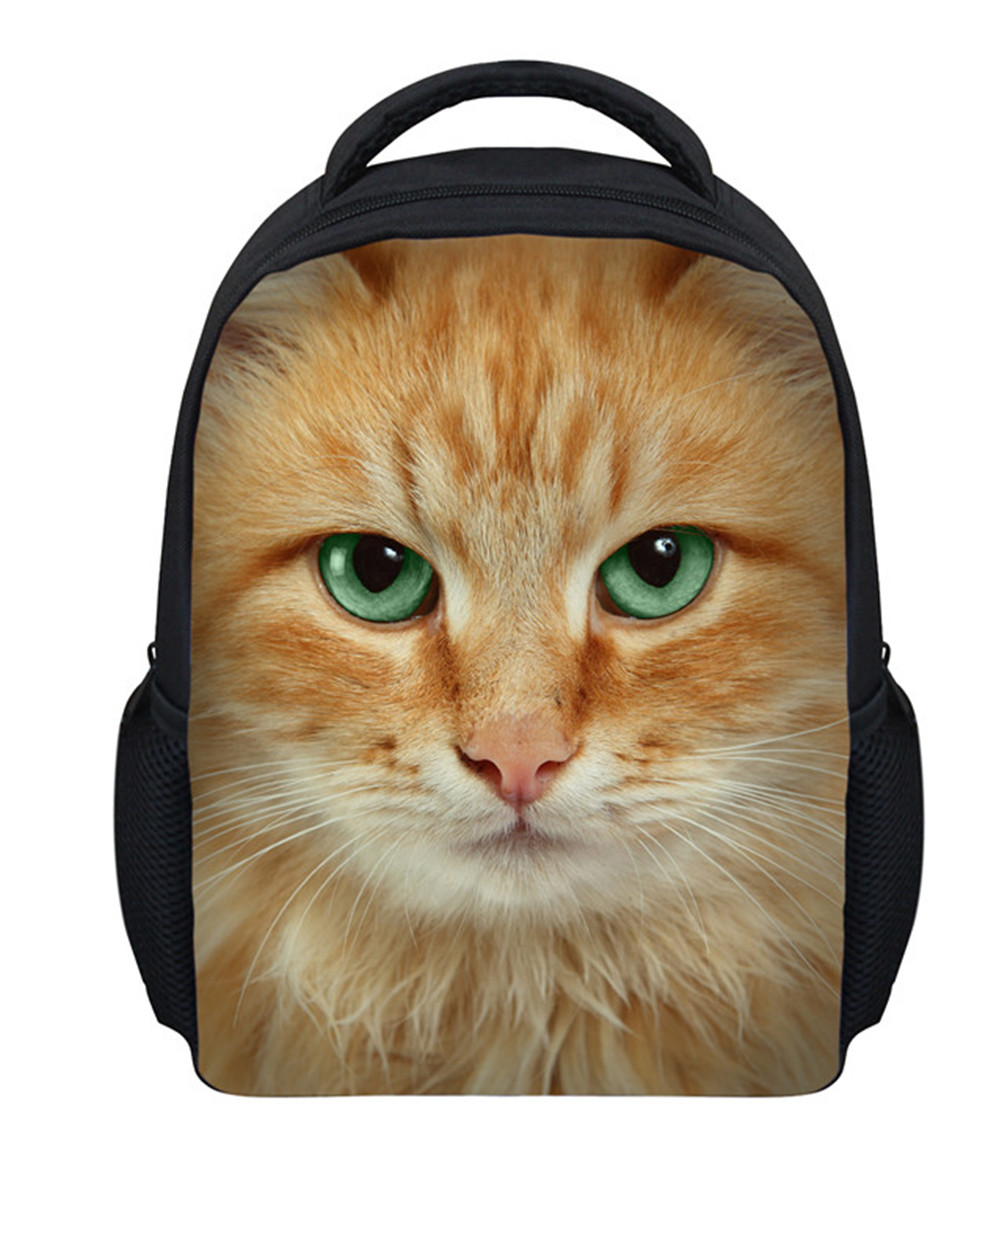 Thikin 2019 Cute Animals Preschool Packie Backpack for Kids Pupil 39 s Cat Schoolbag Good Children 39 s Day Present in Backpacks from Luggage amp Bags